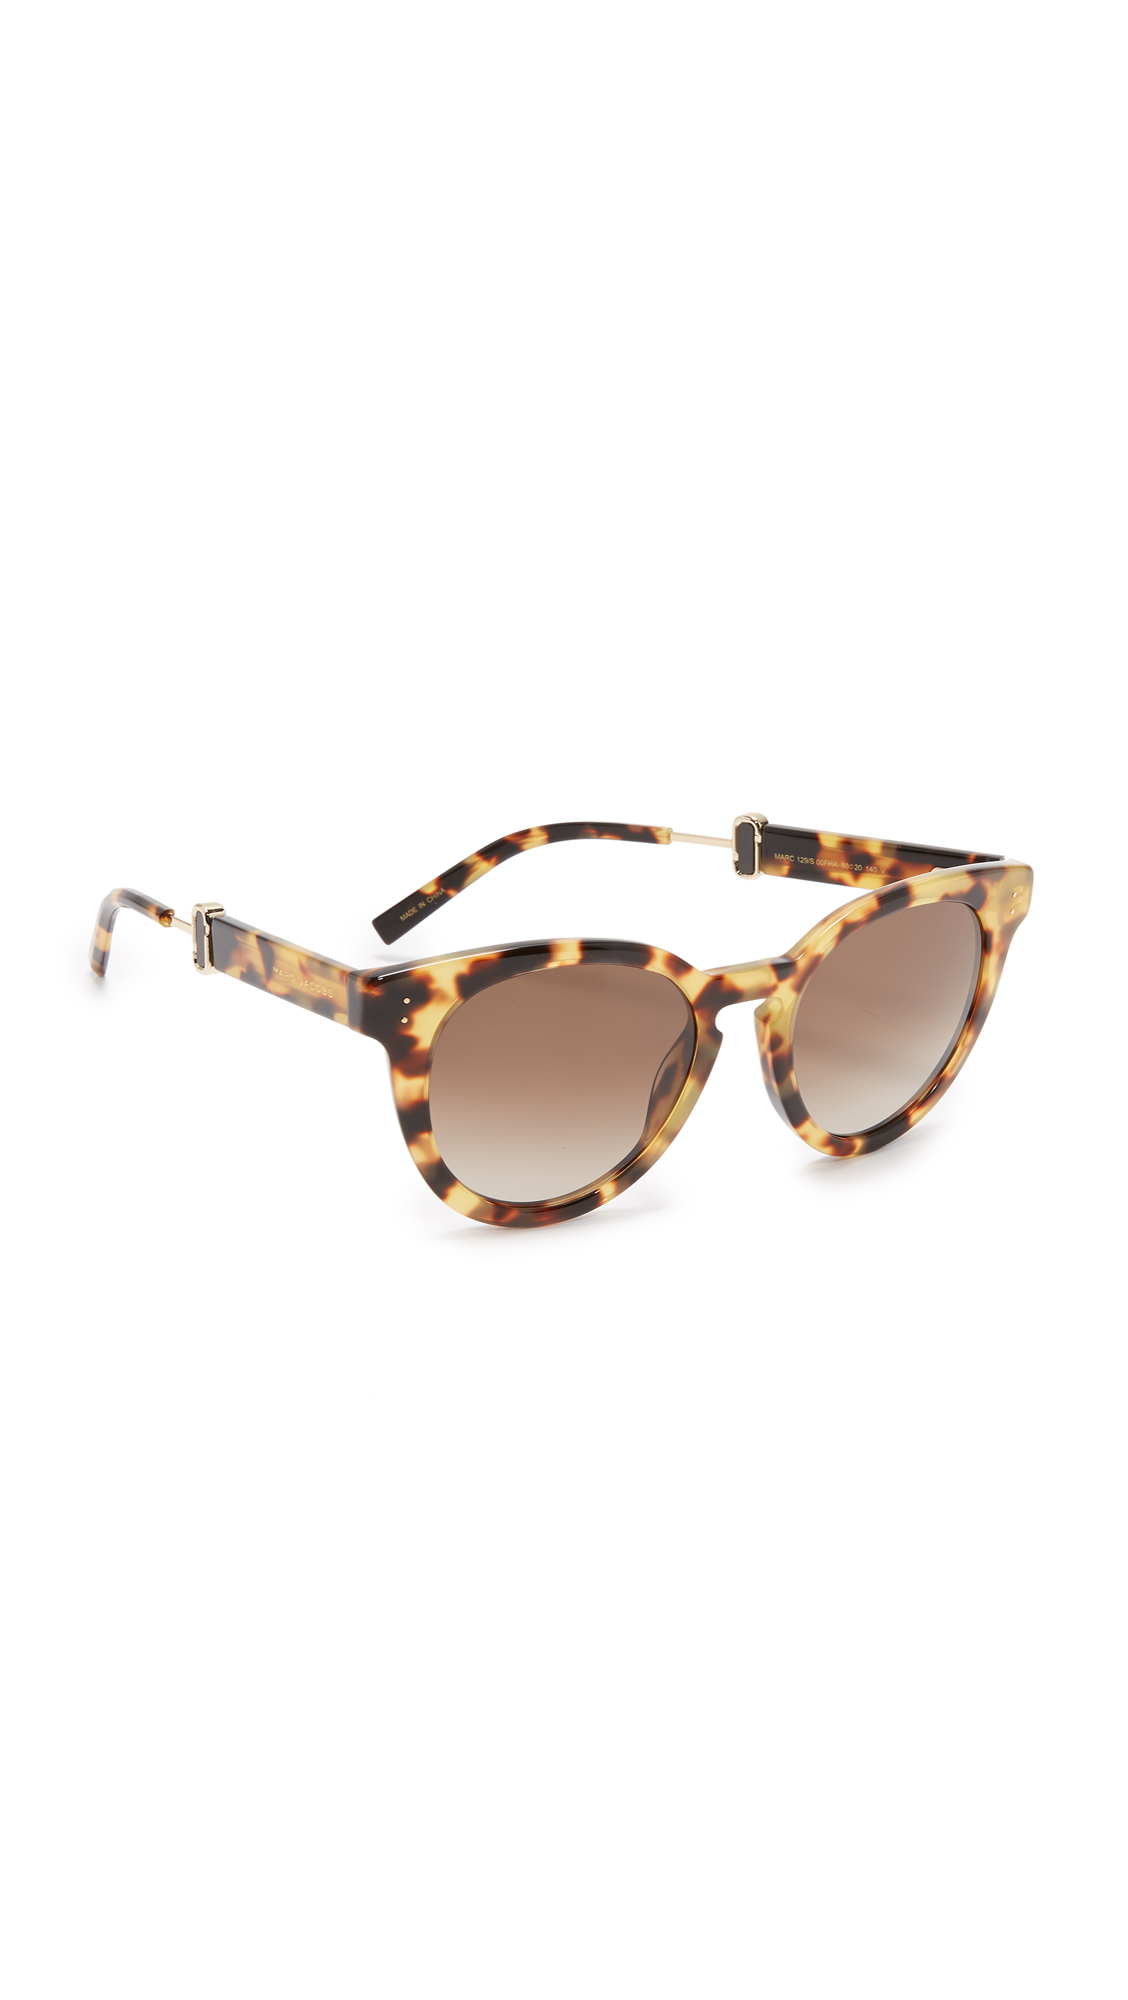 marc jacobs female 211469 marc jacobs round sunglasses spotted havanabrown